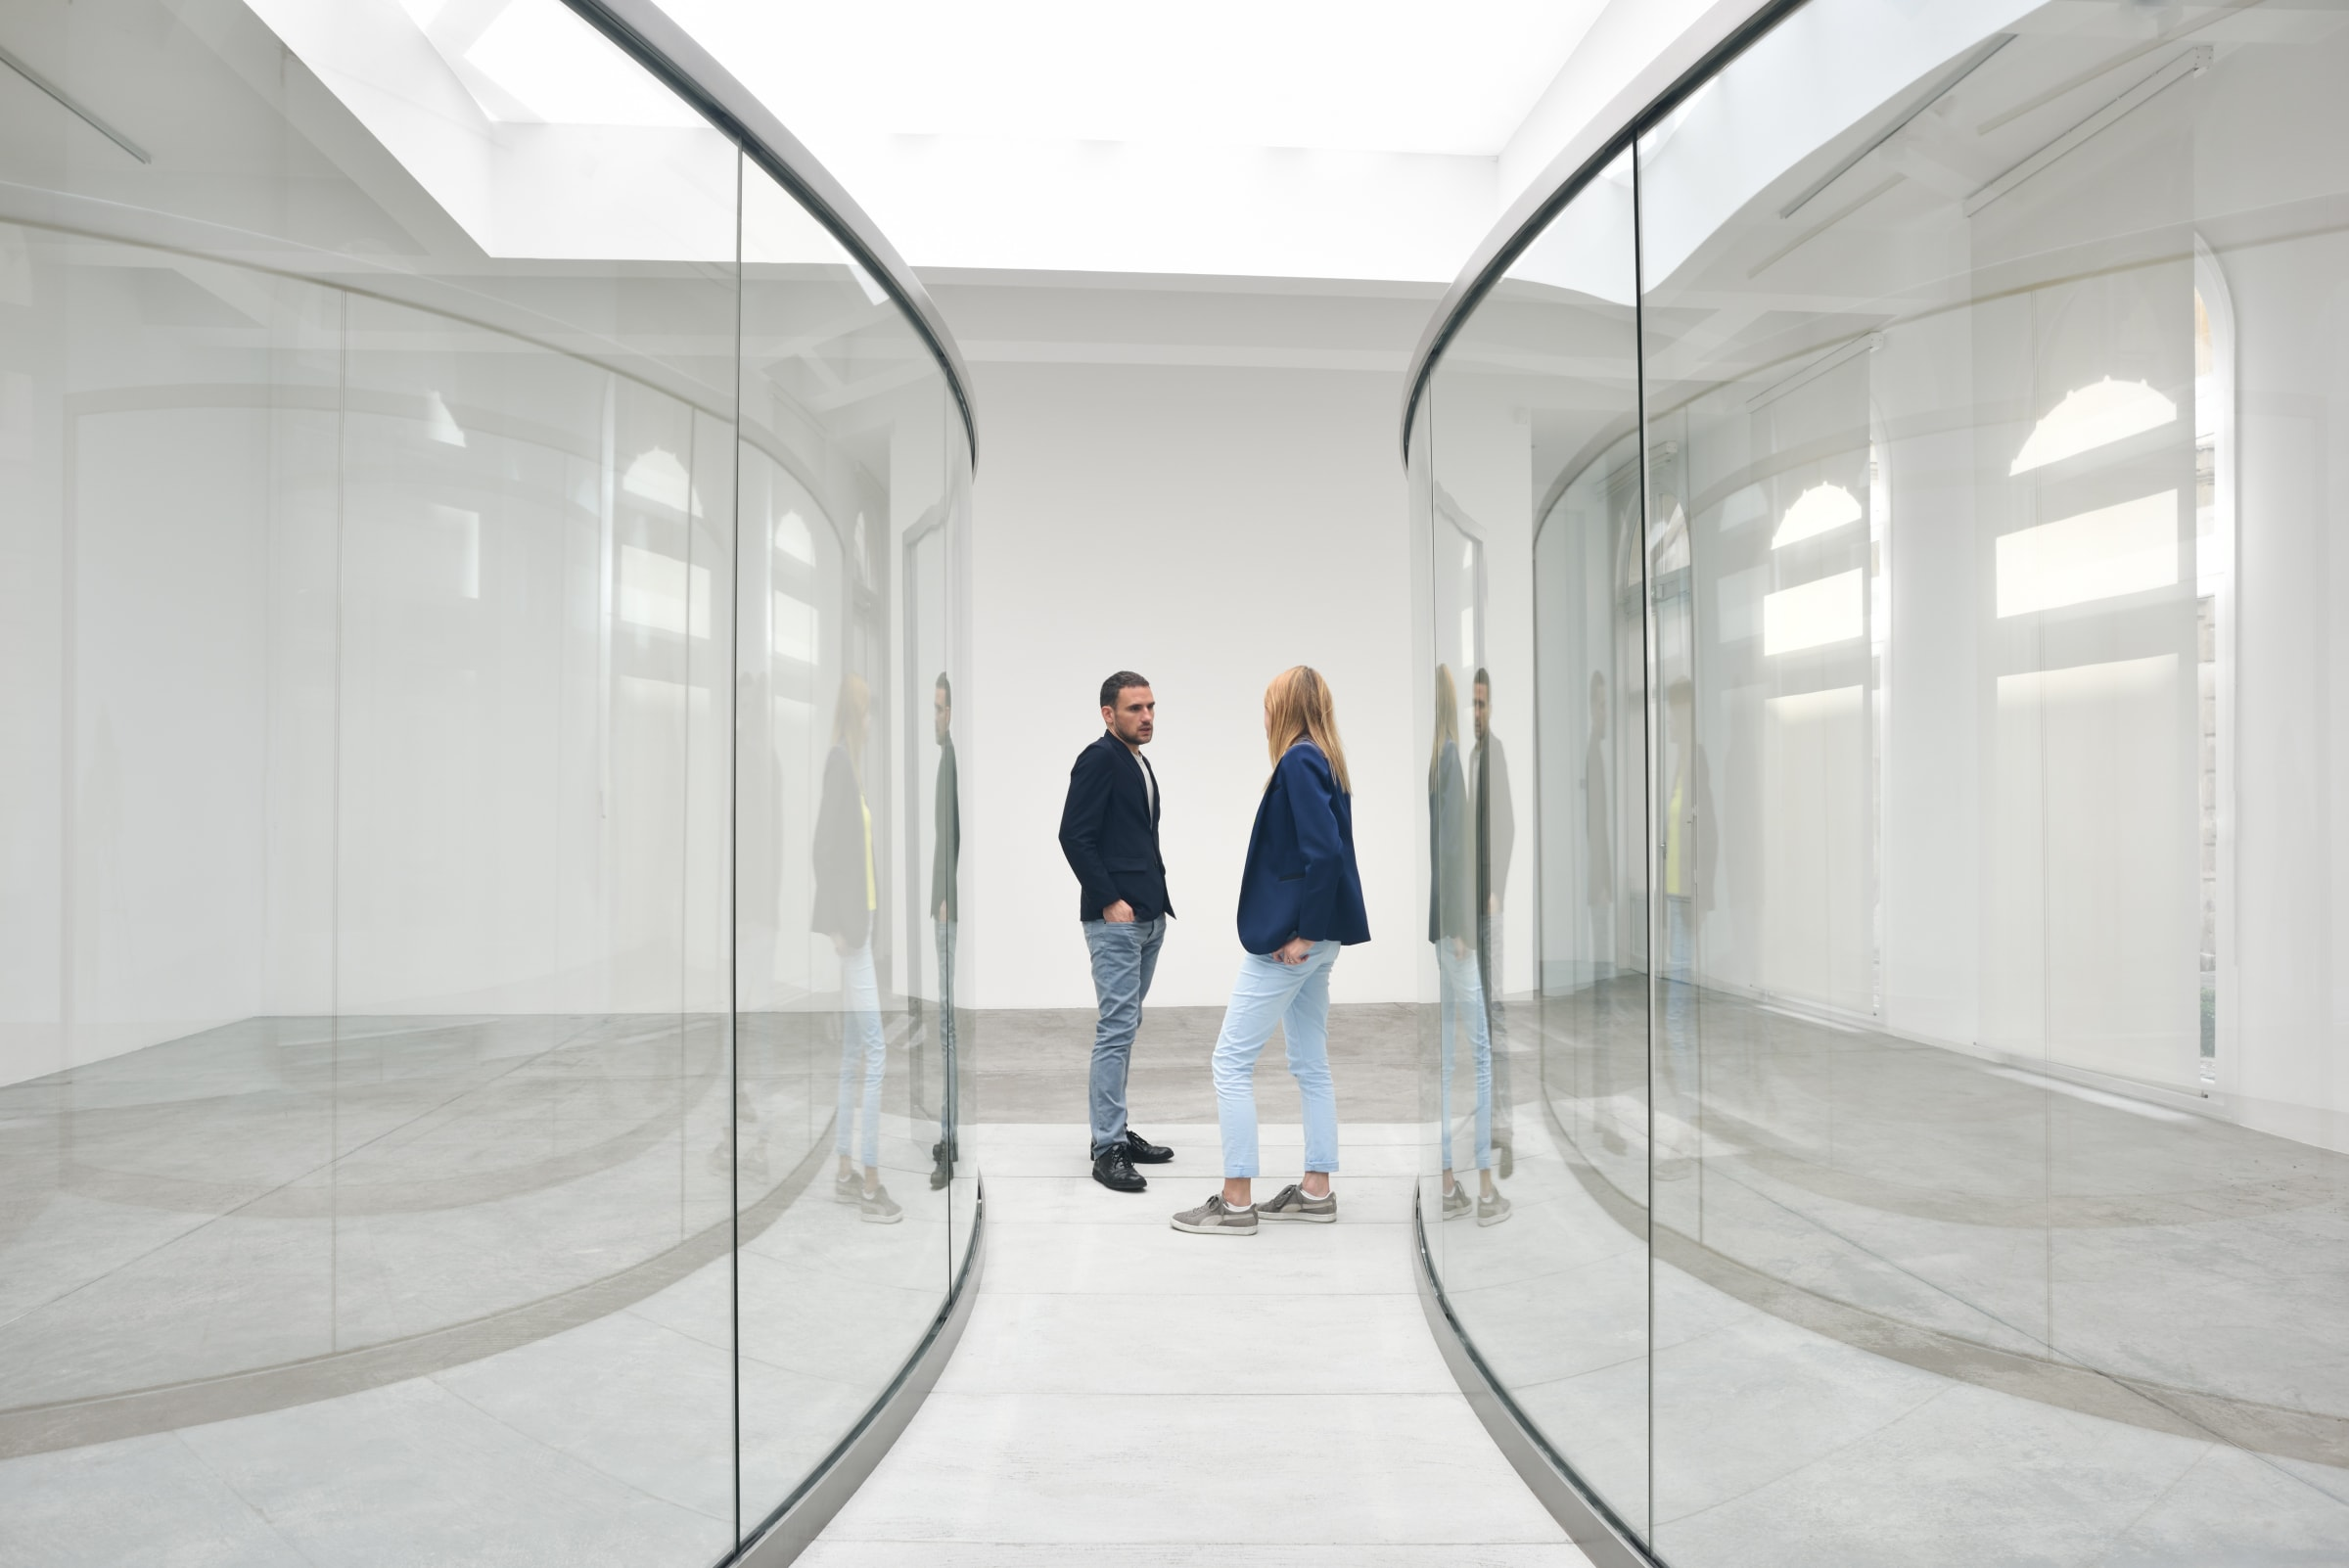 Gallery installation: two people stand in-between two curved glass walls.